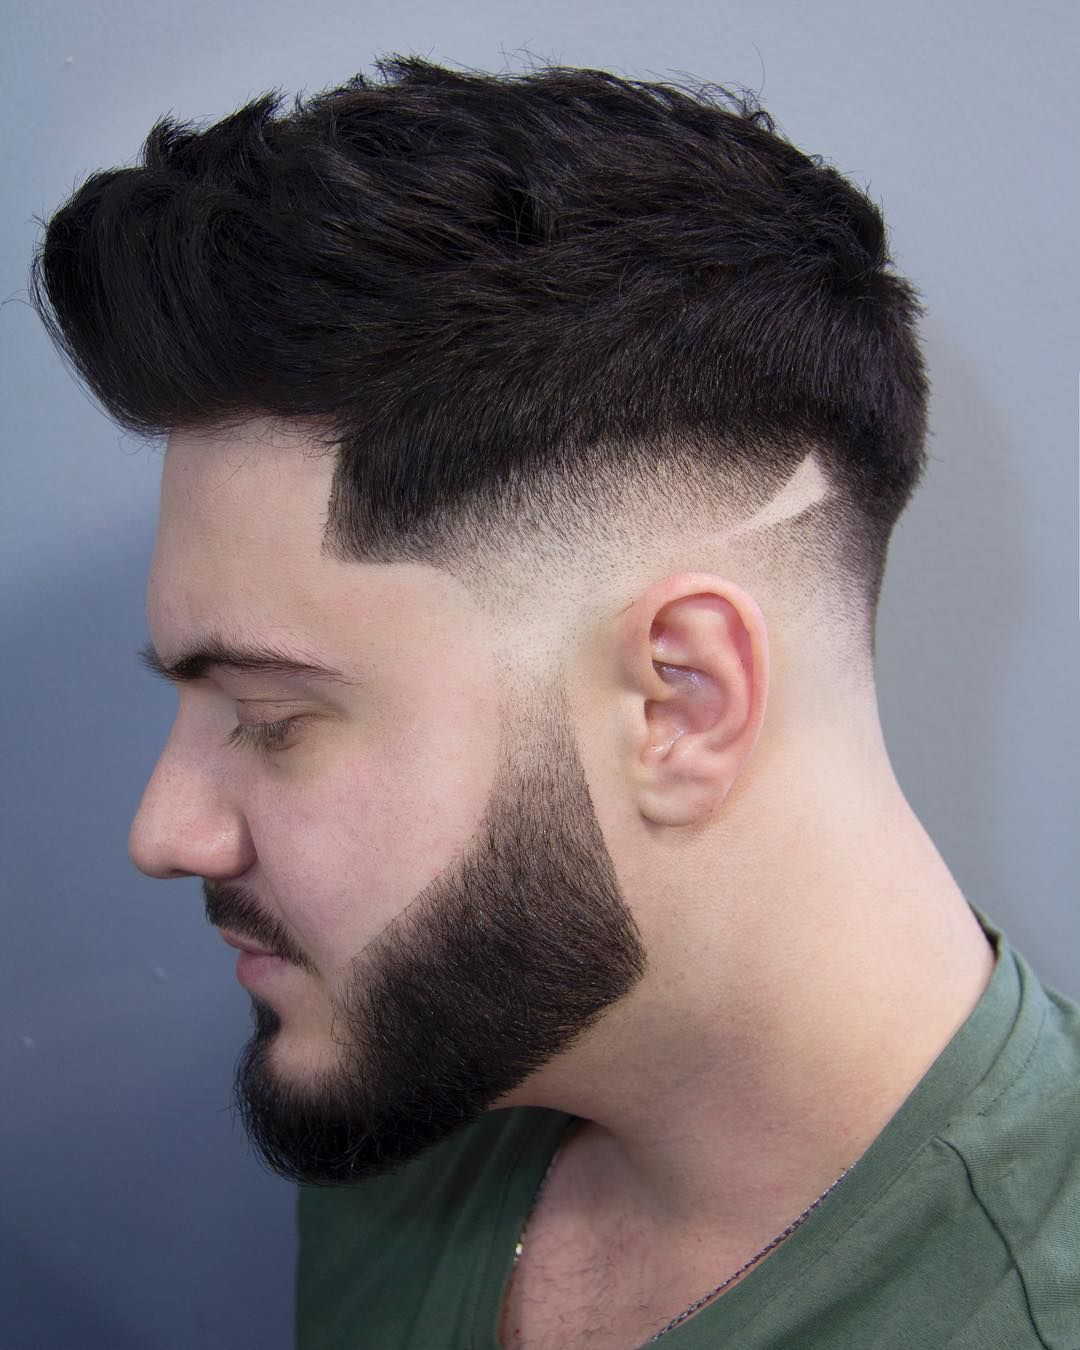 Cool Haircuts With Shaved Sides Shaved Sides Undercut And Haircut